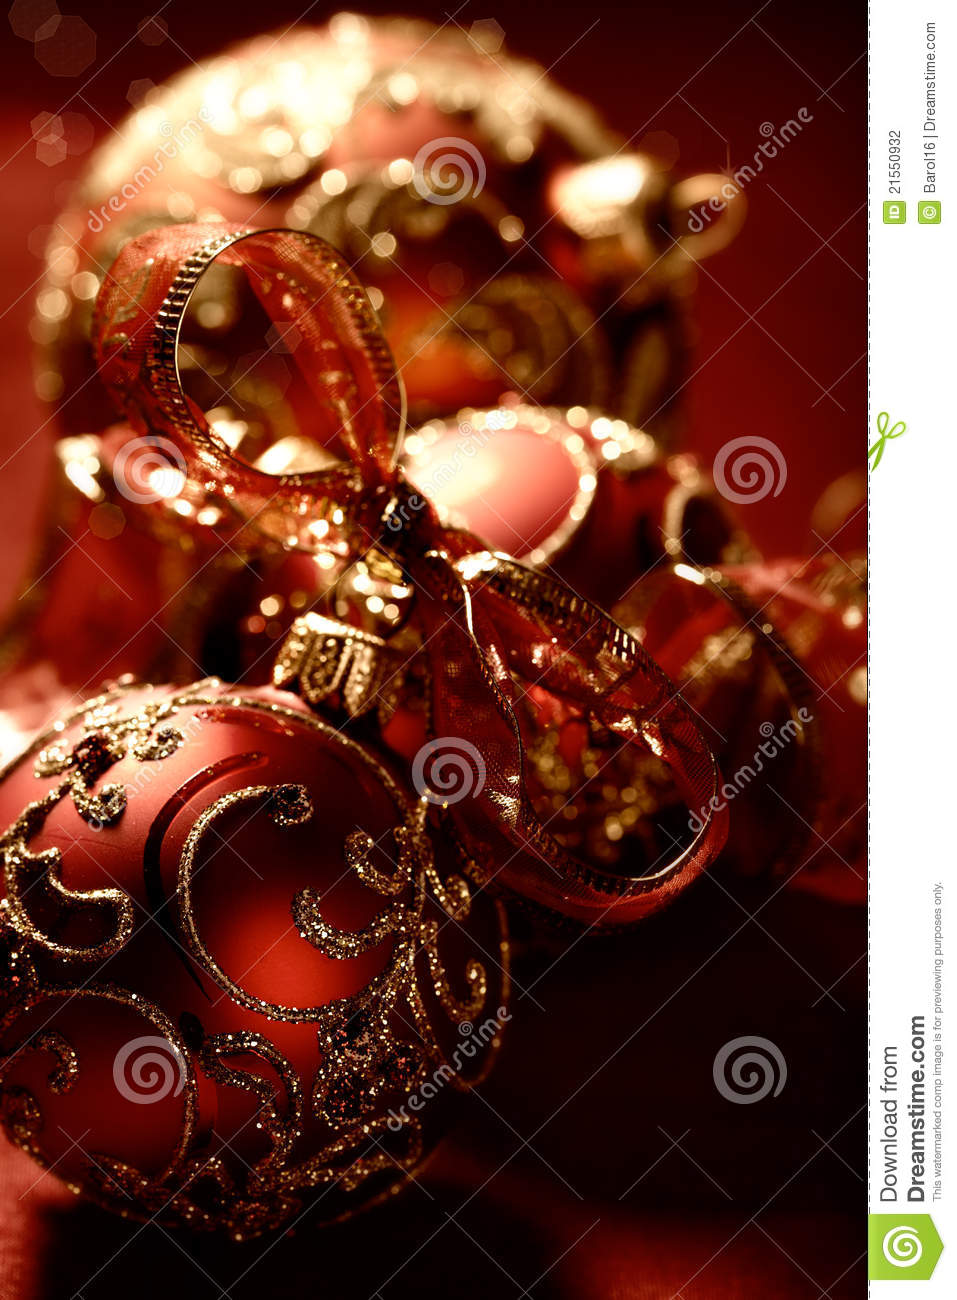 Elegant Red Christmas Ornaments Stock Photography - Image: 21550932